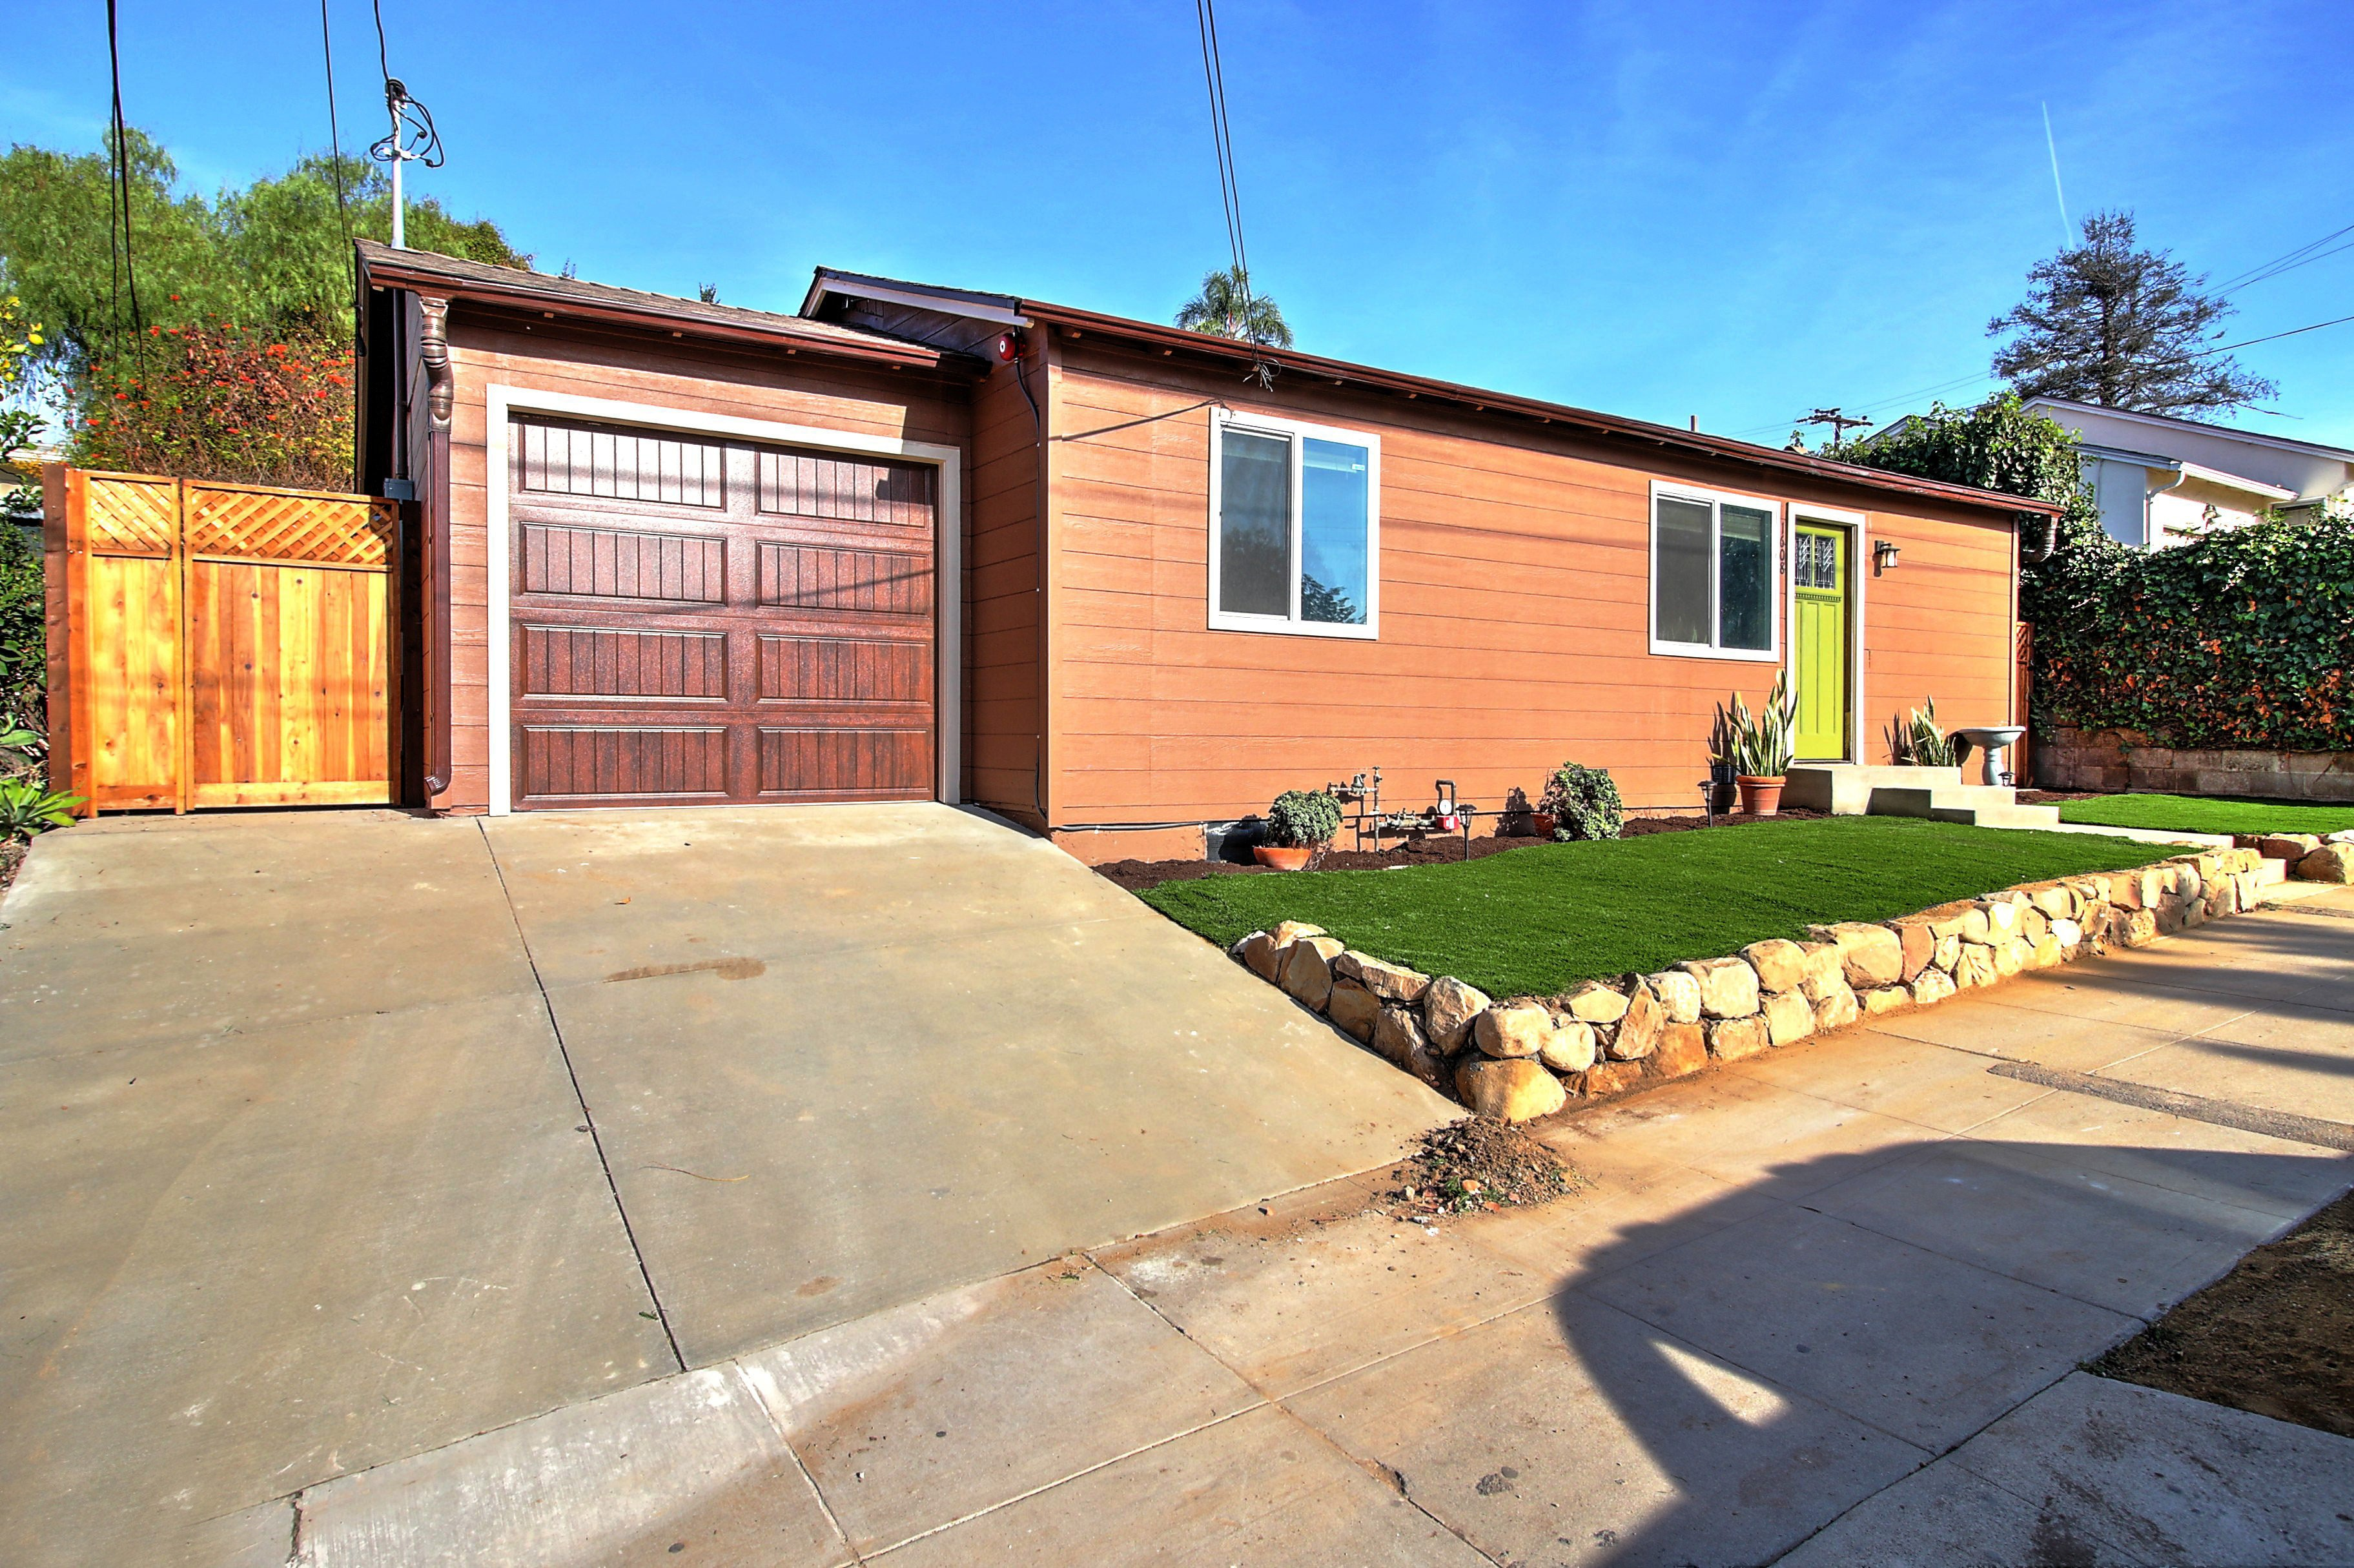 Turnkey 2/2 House w/Gar & Yd, Walk to Downtown SB | Santa Barbara California 93101